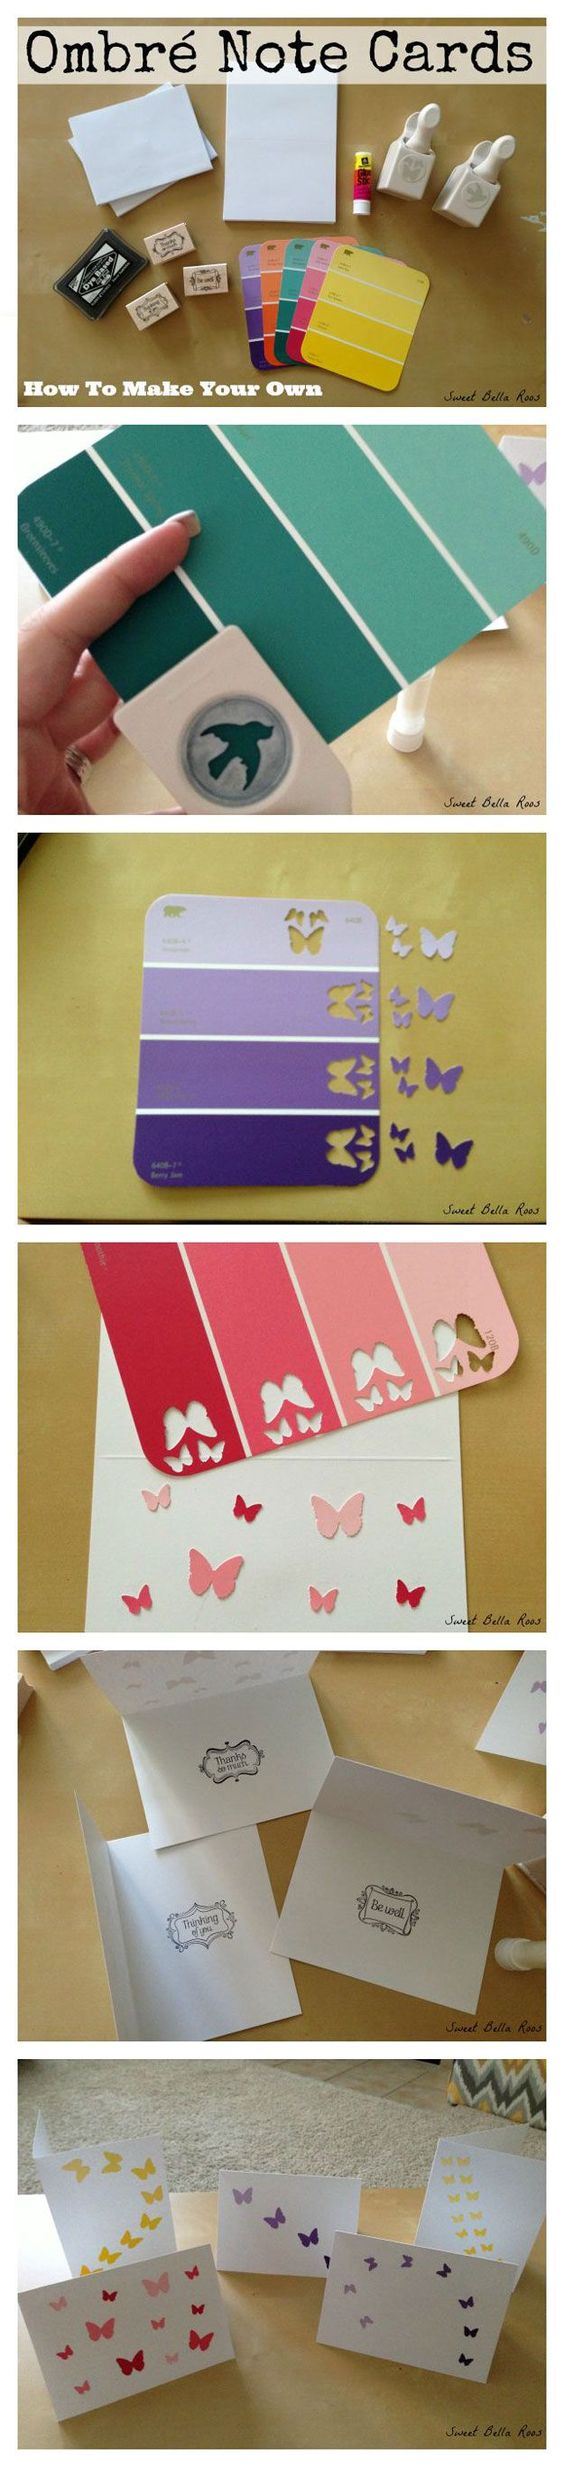 Ombre Paint Chip Design.